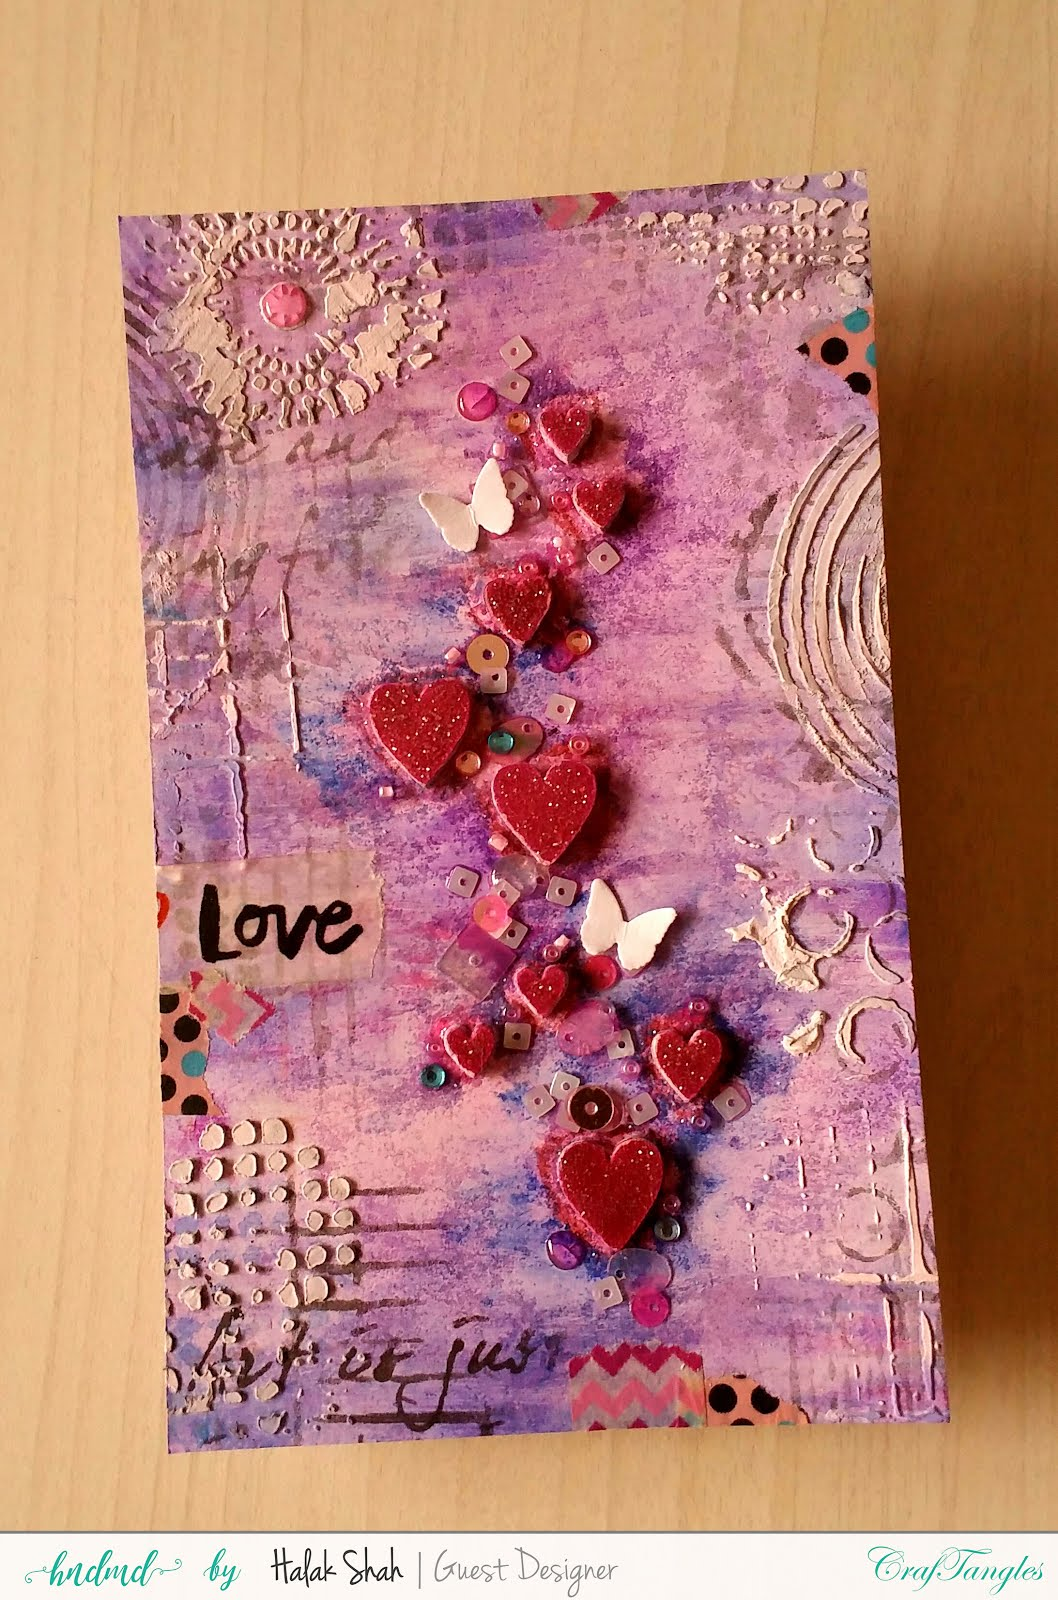 Different ways to create cards using CrafTangles Products 4